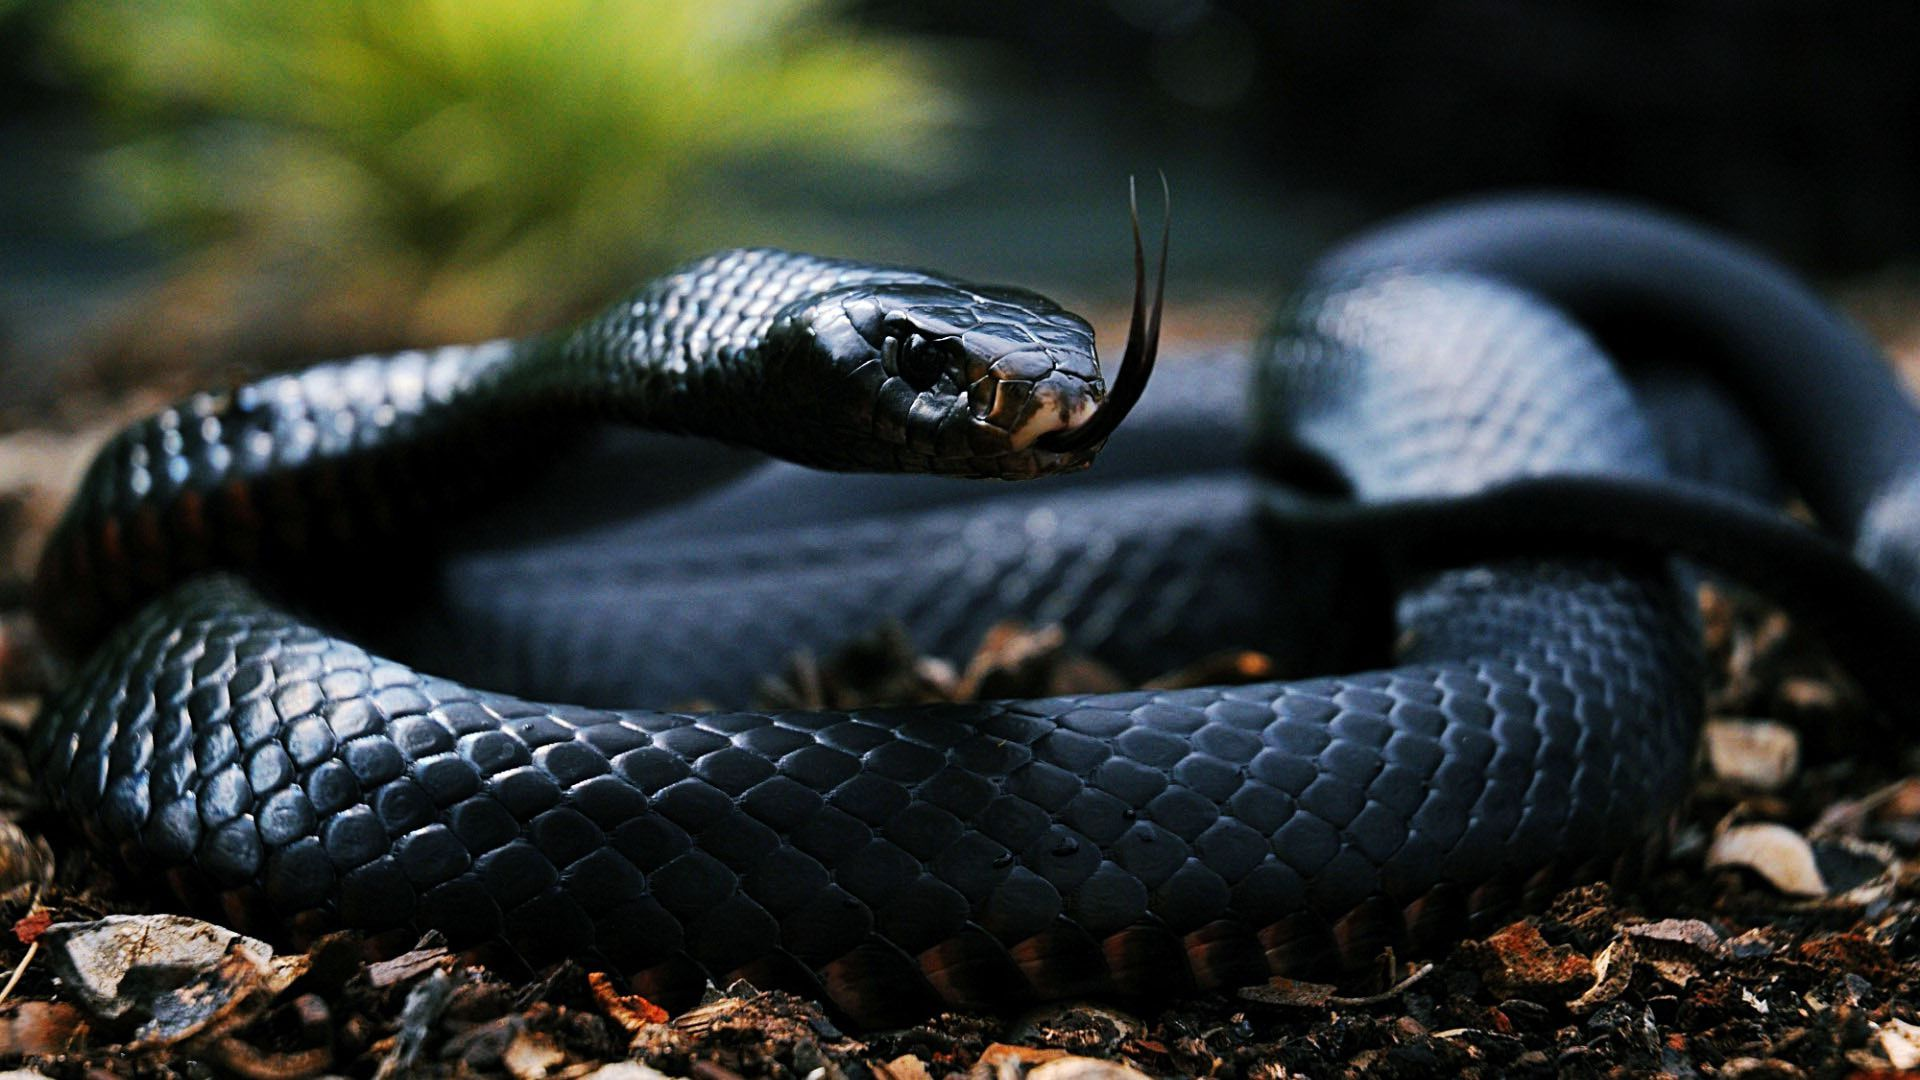 hd snake photos